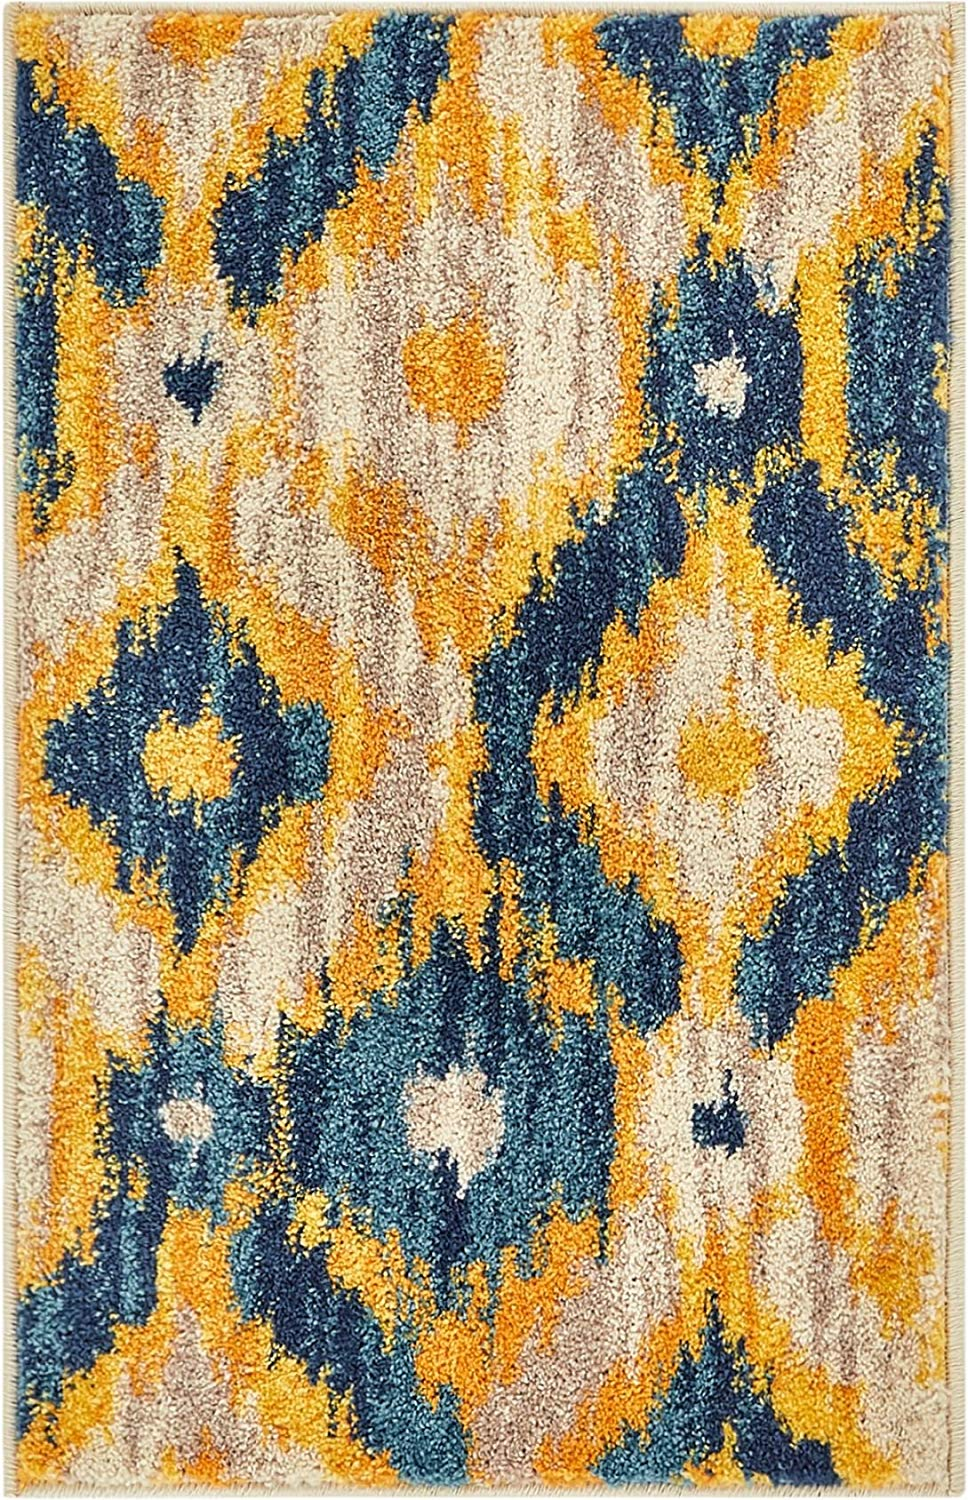 Cheap Blue And Yellow Area Rug Find Blue And Yellow Area Rug Deals On Line At Alibaba Com